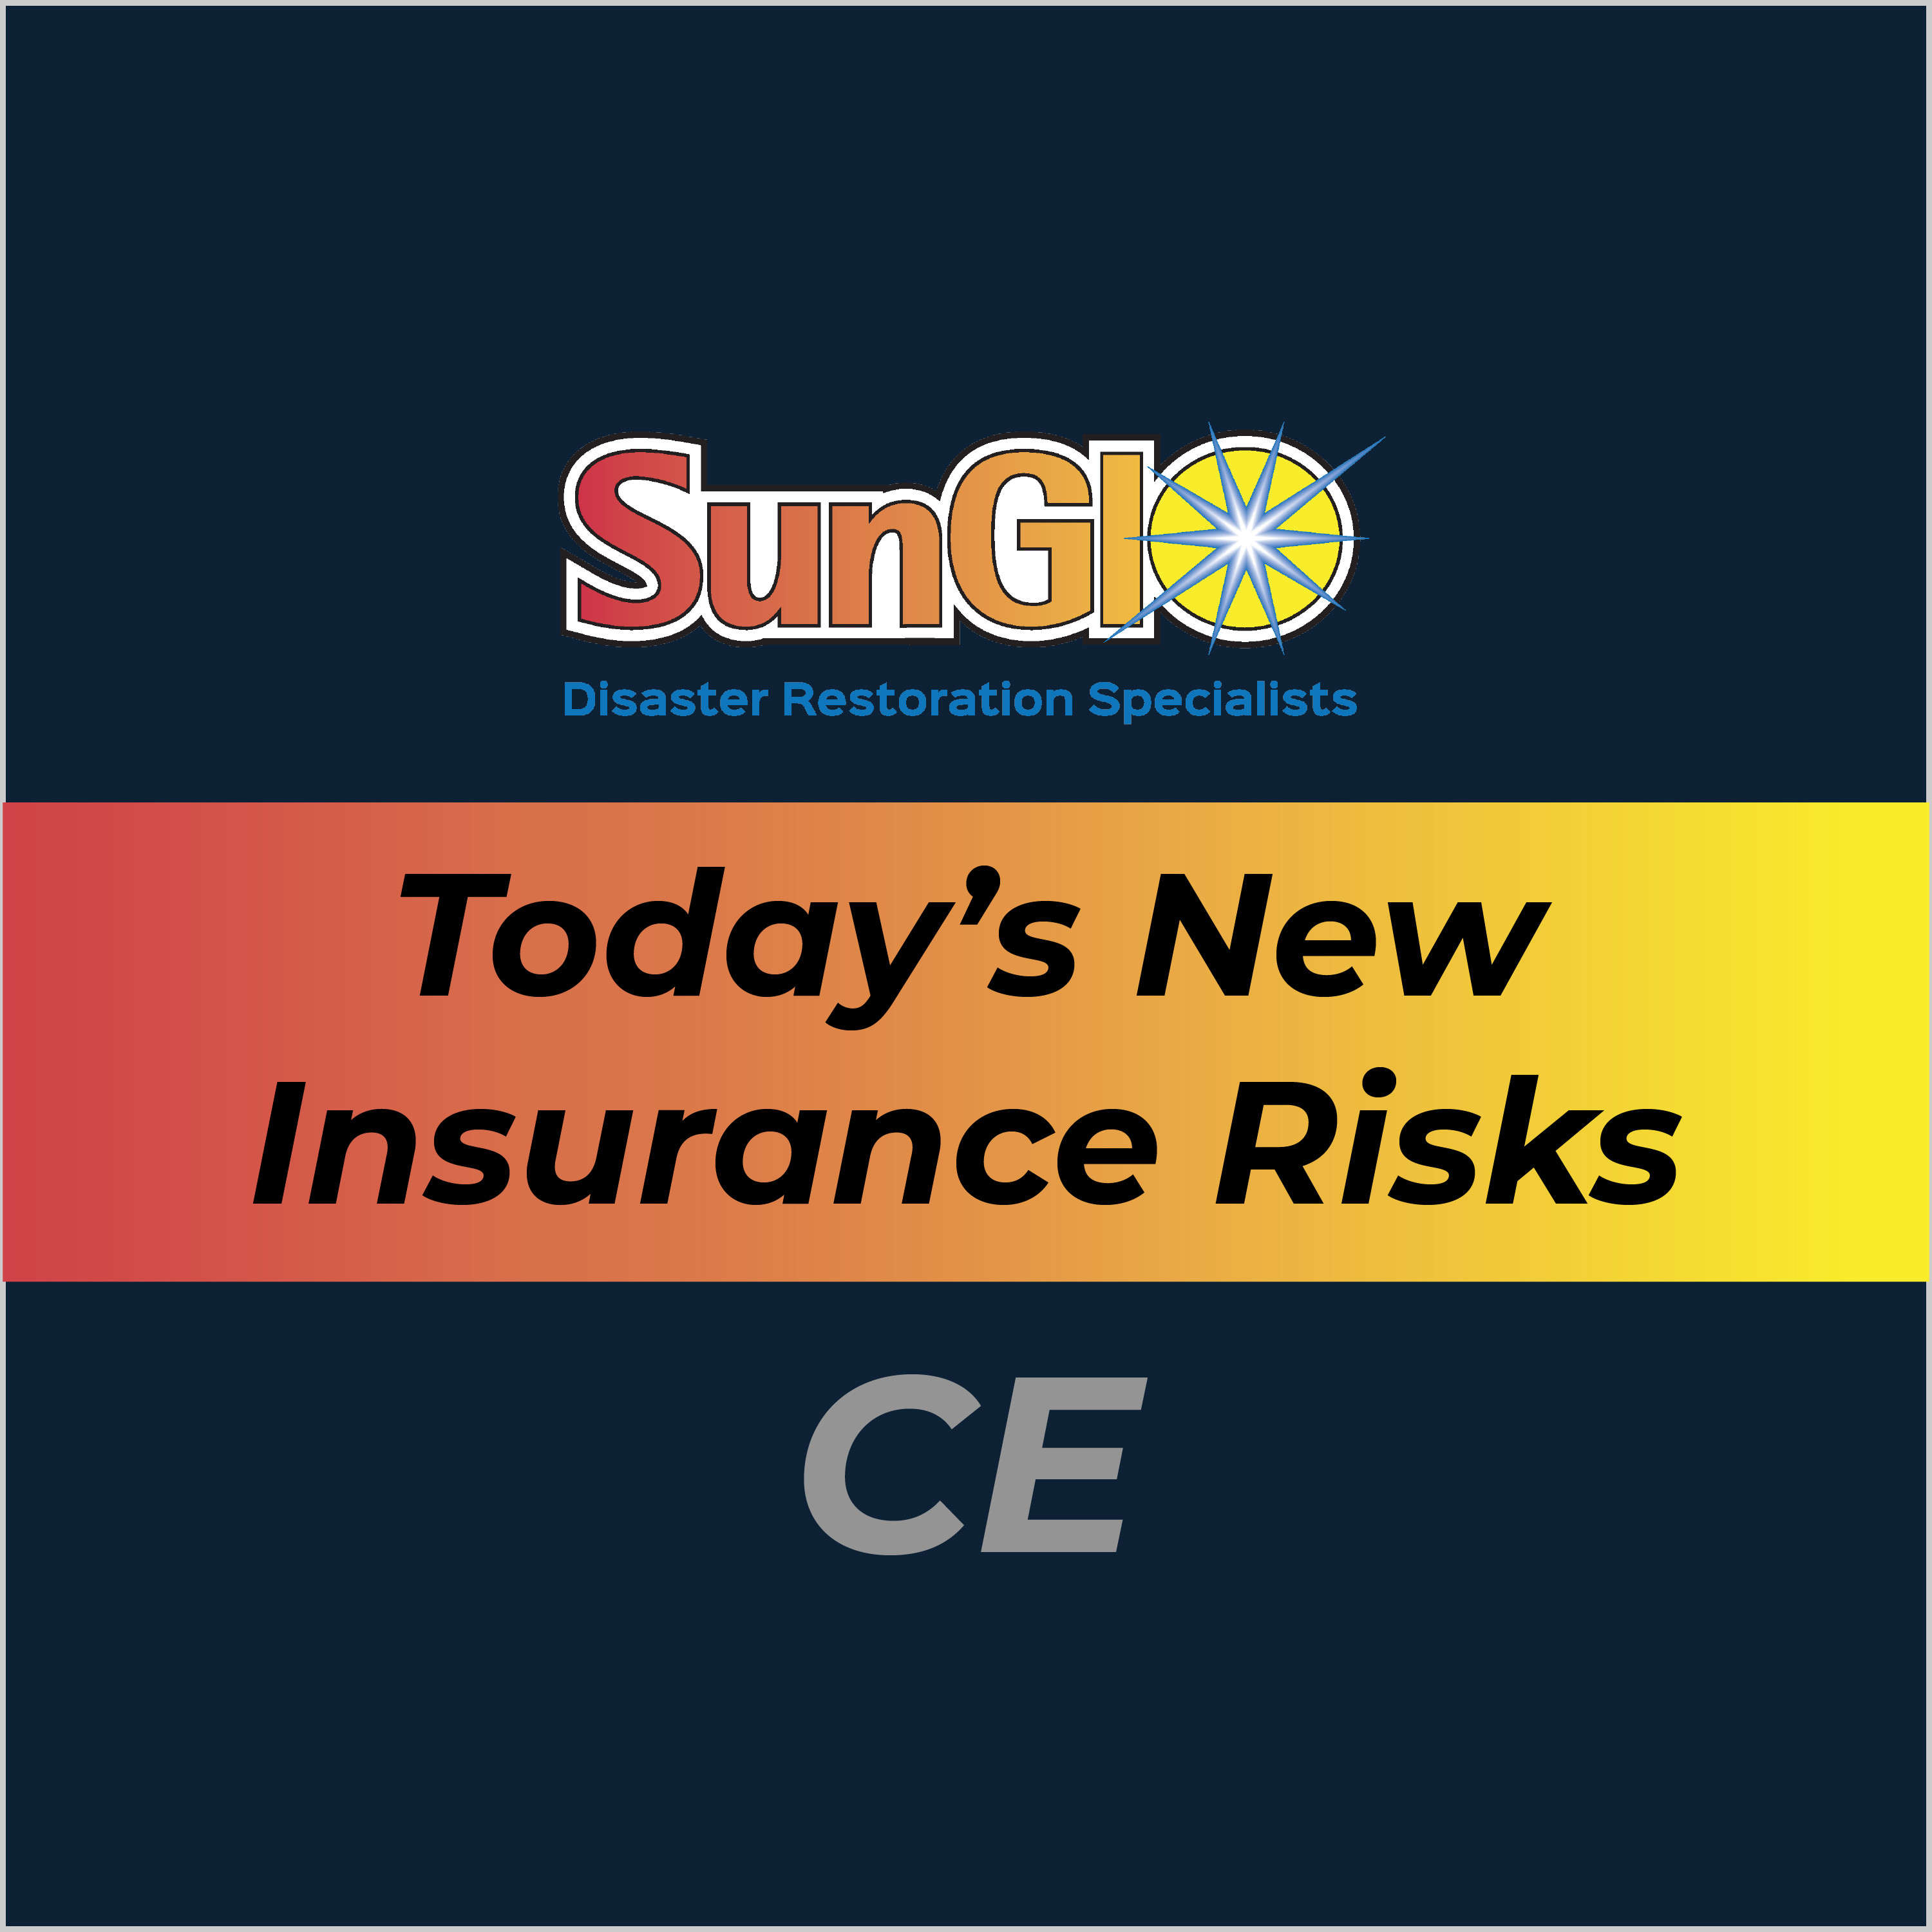 Today's New Insurance Risks